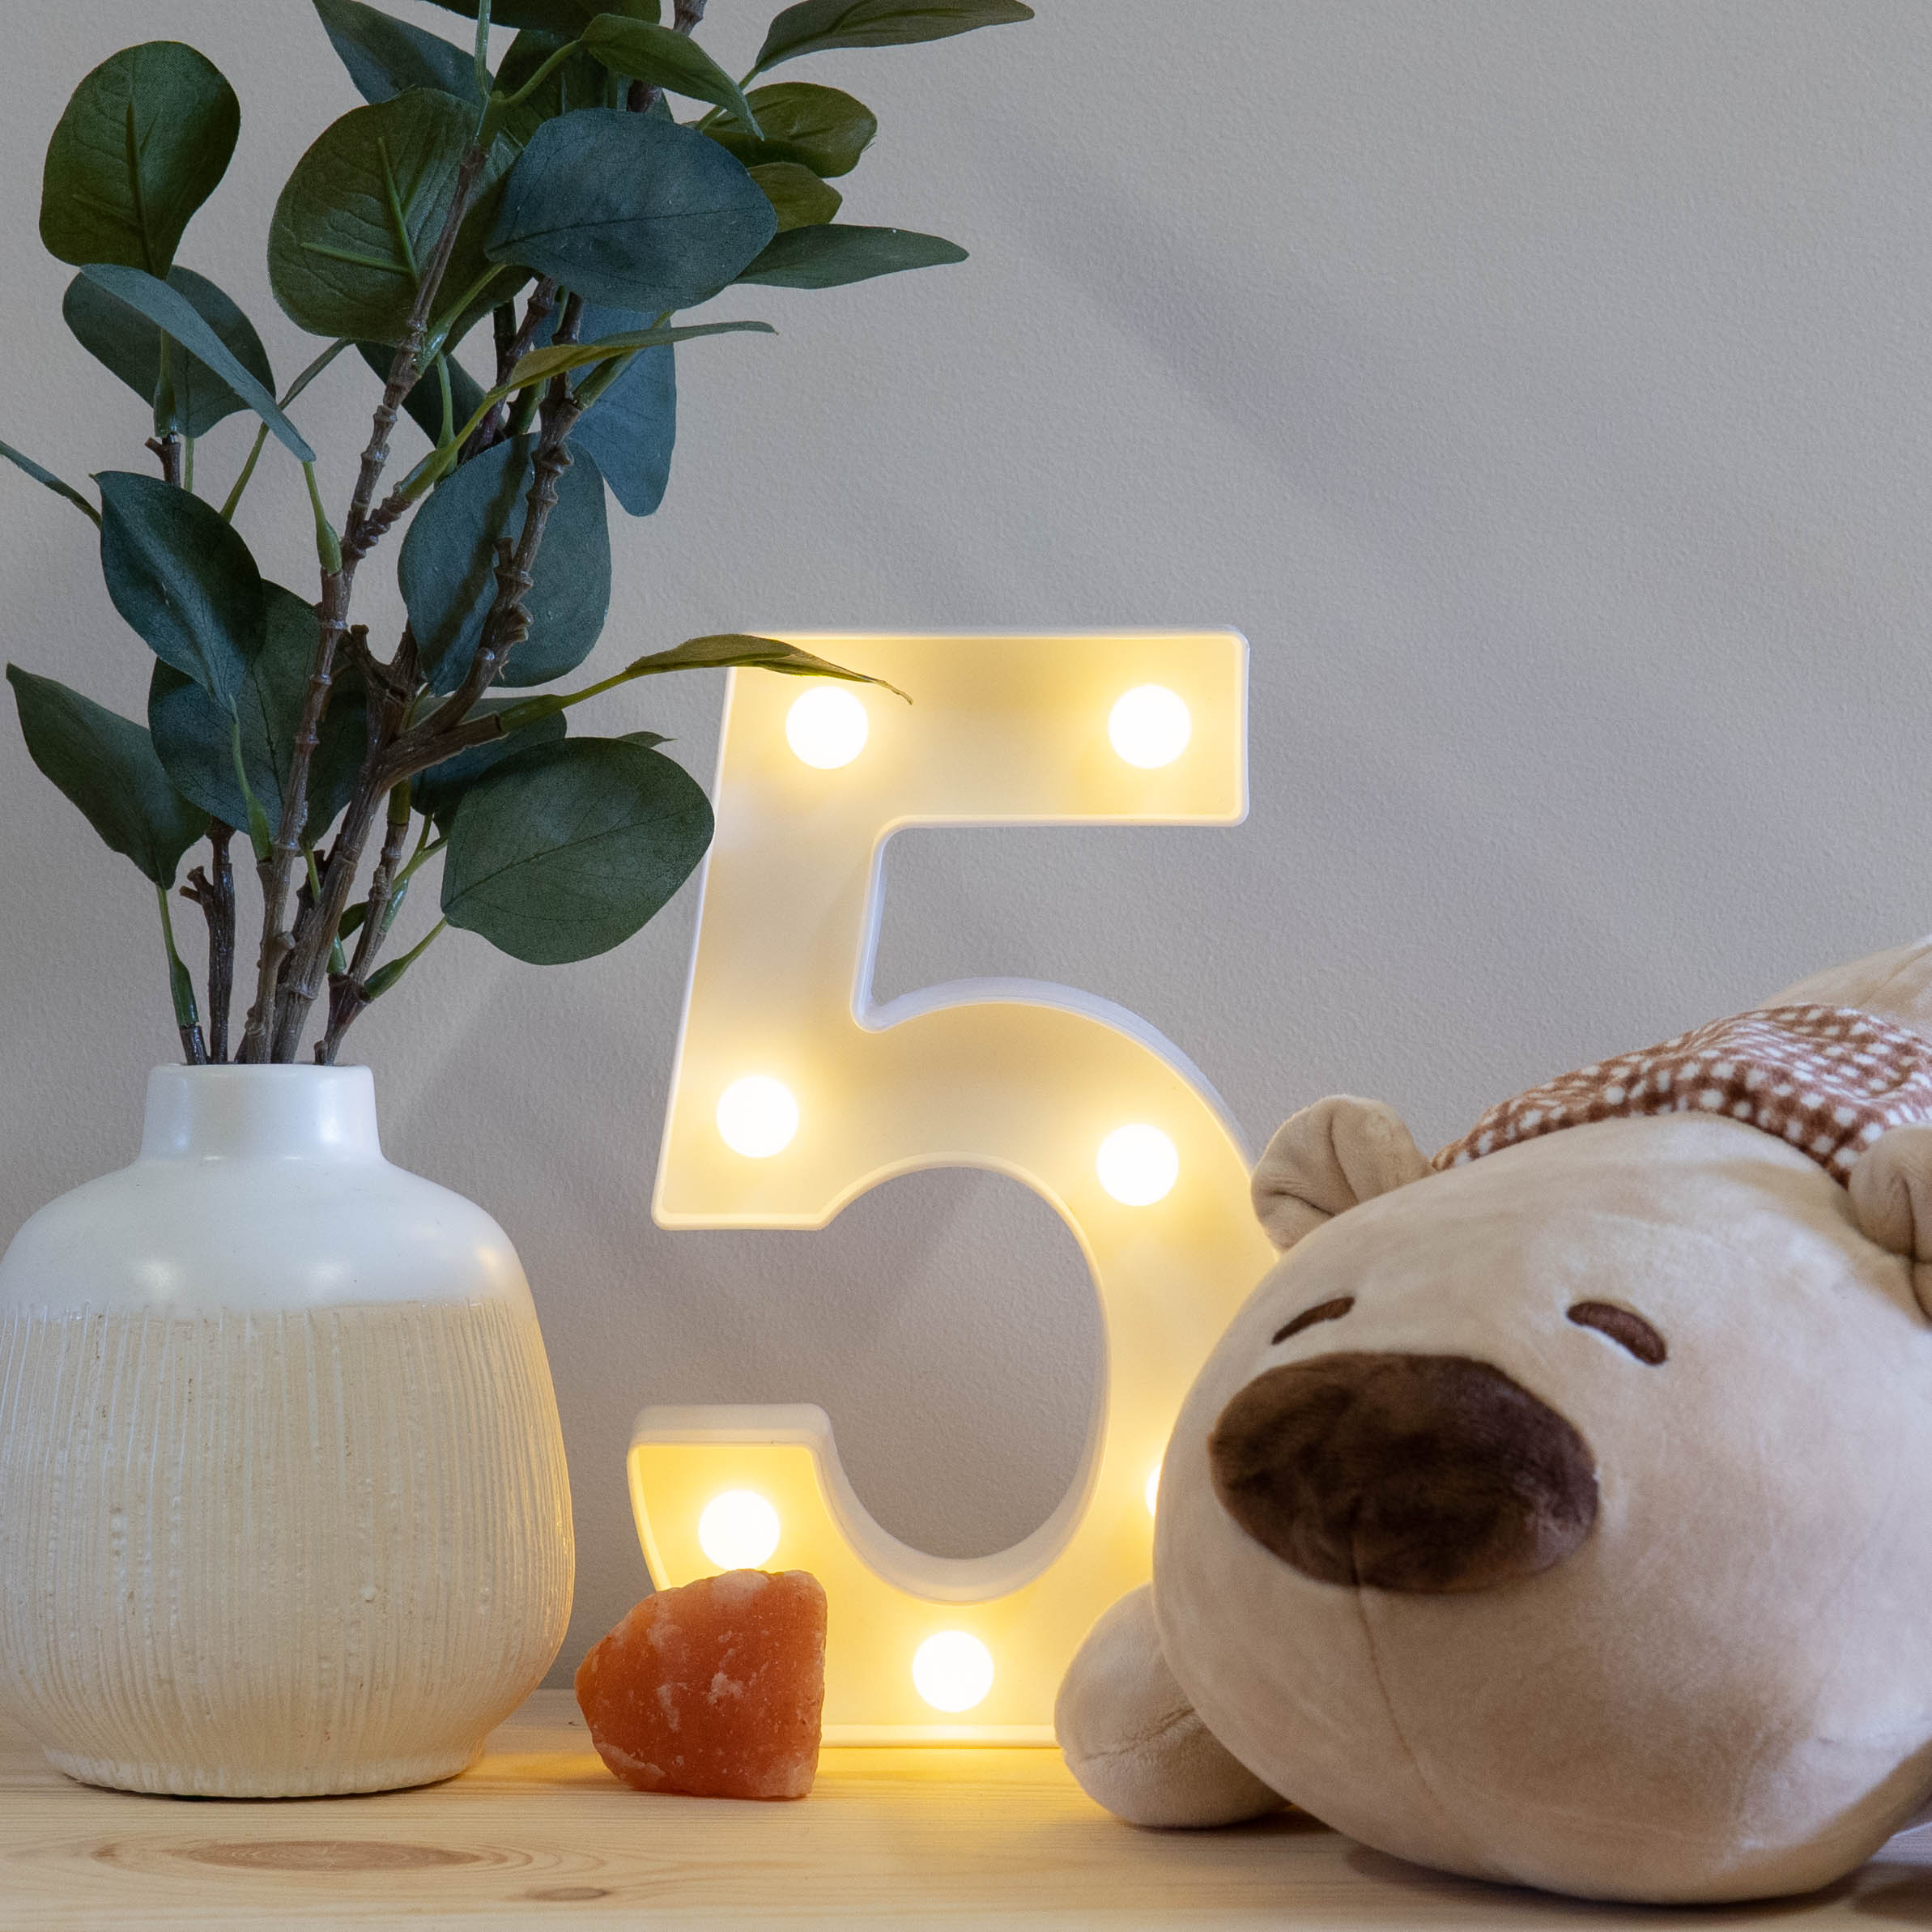 number-5-night-light-2